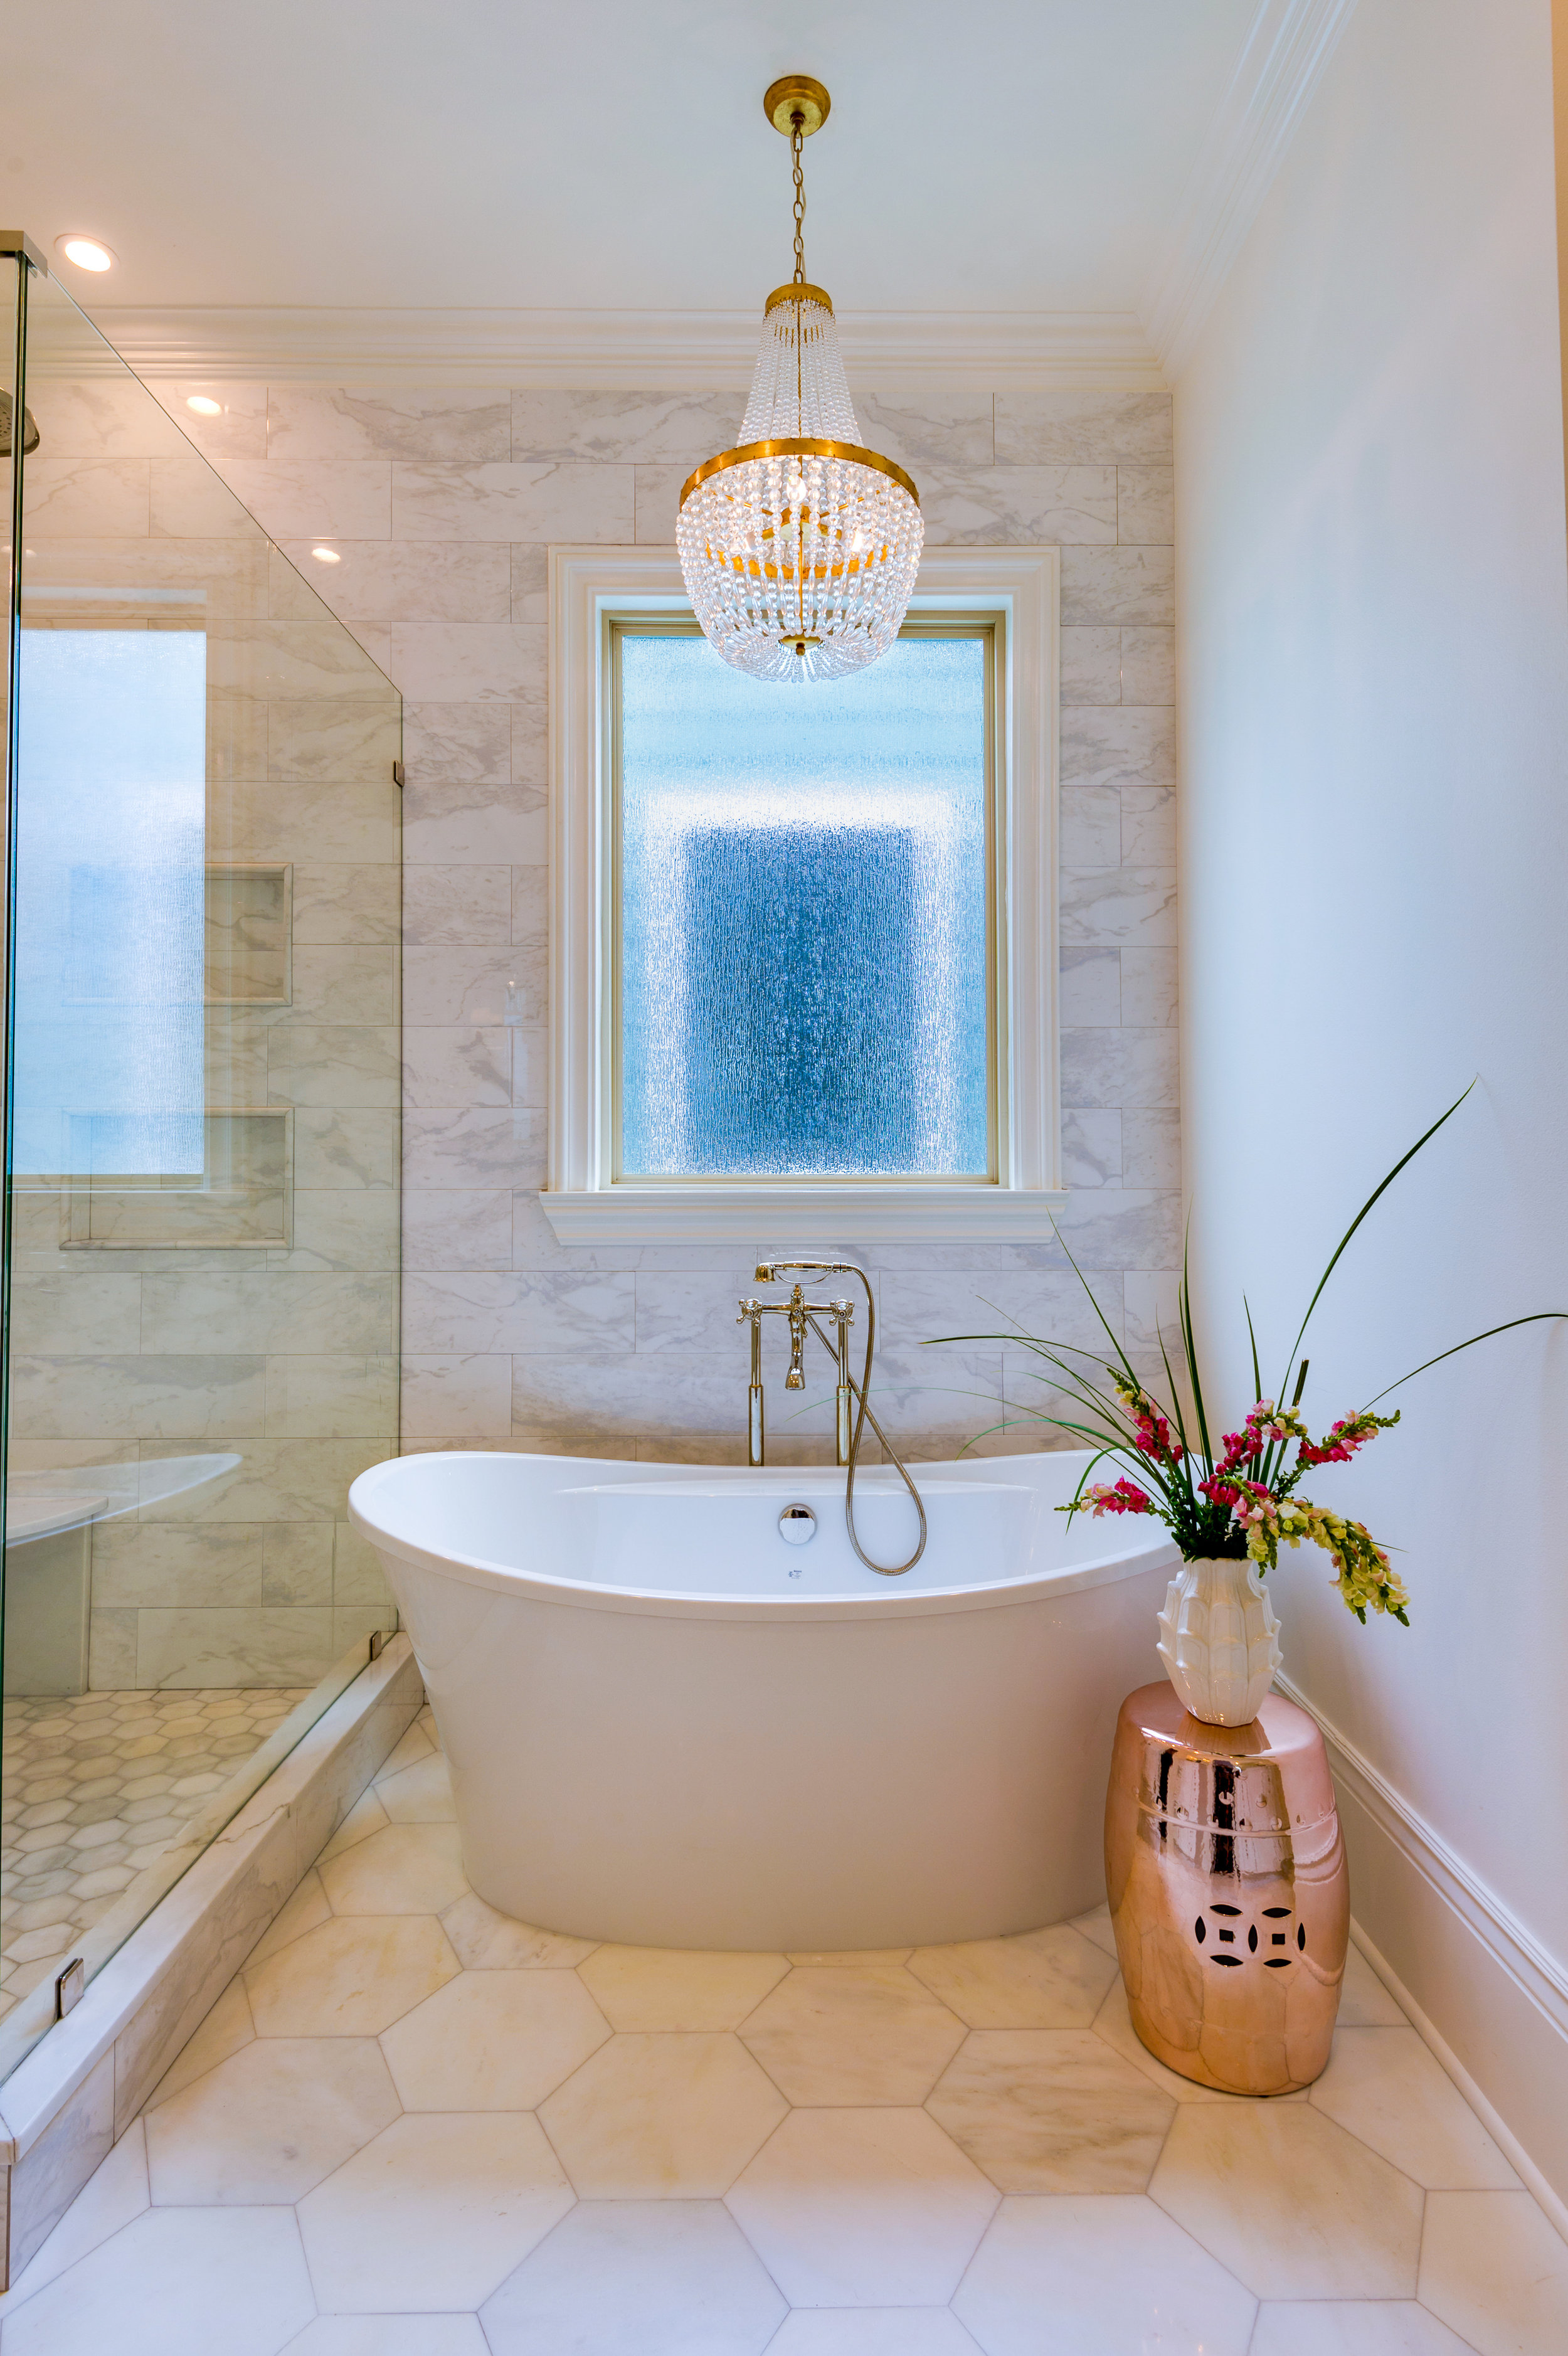 bathroom tub design ideas luxury interior design metairie uptown khb interiors